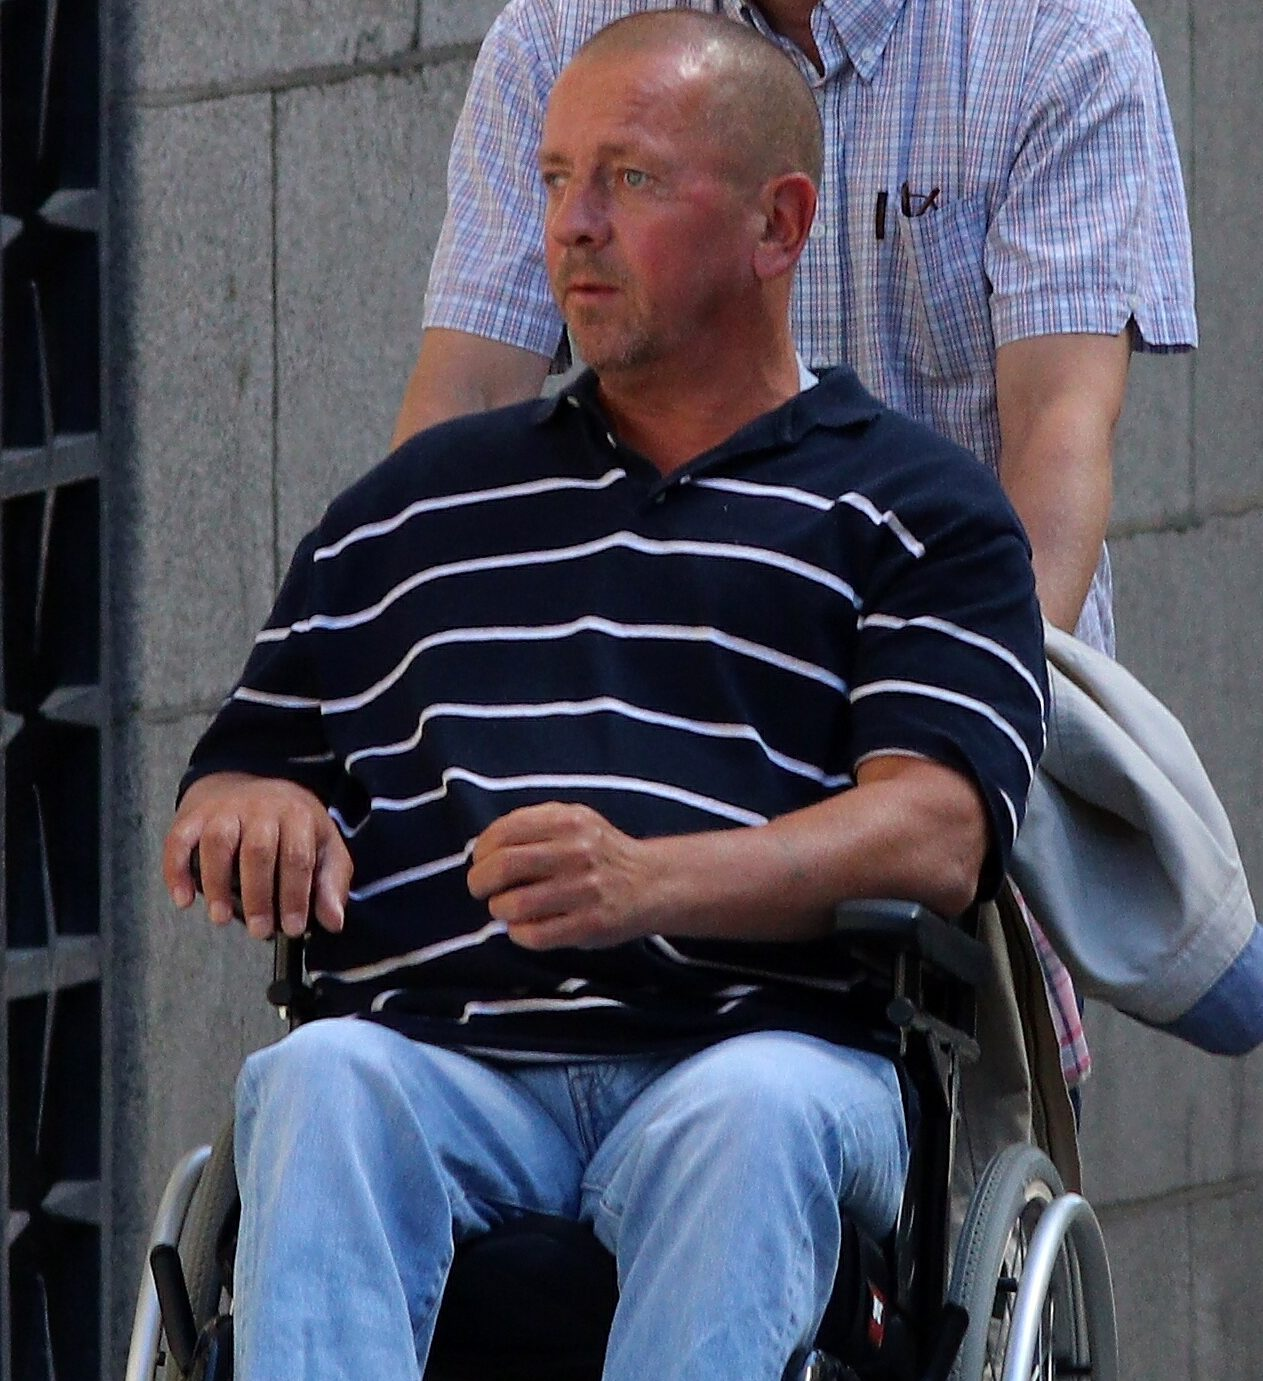 20 years for the crackhead who put his friend in wheelchair